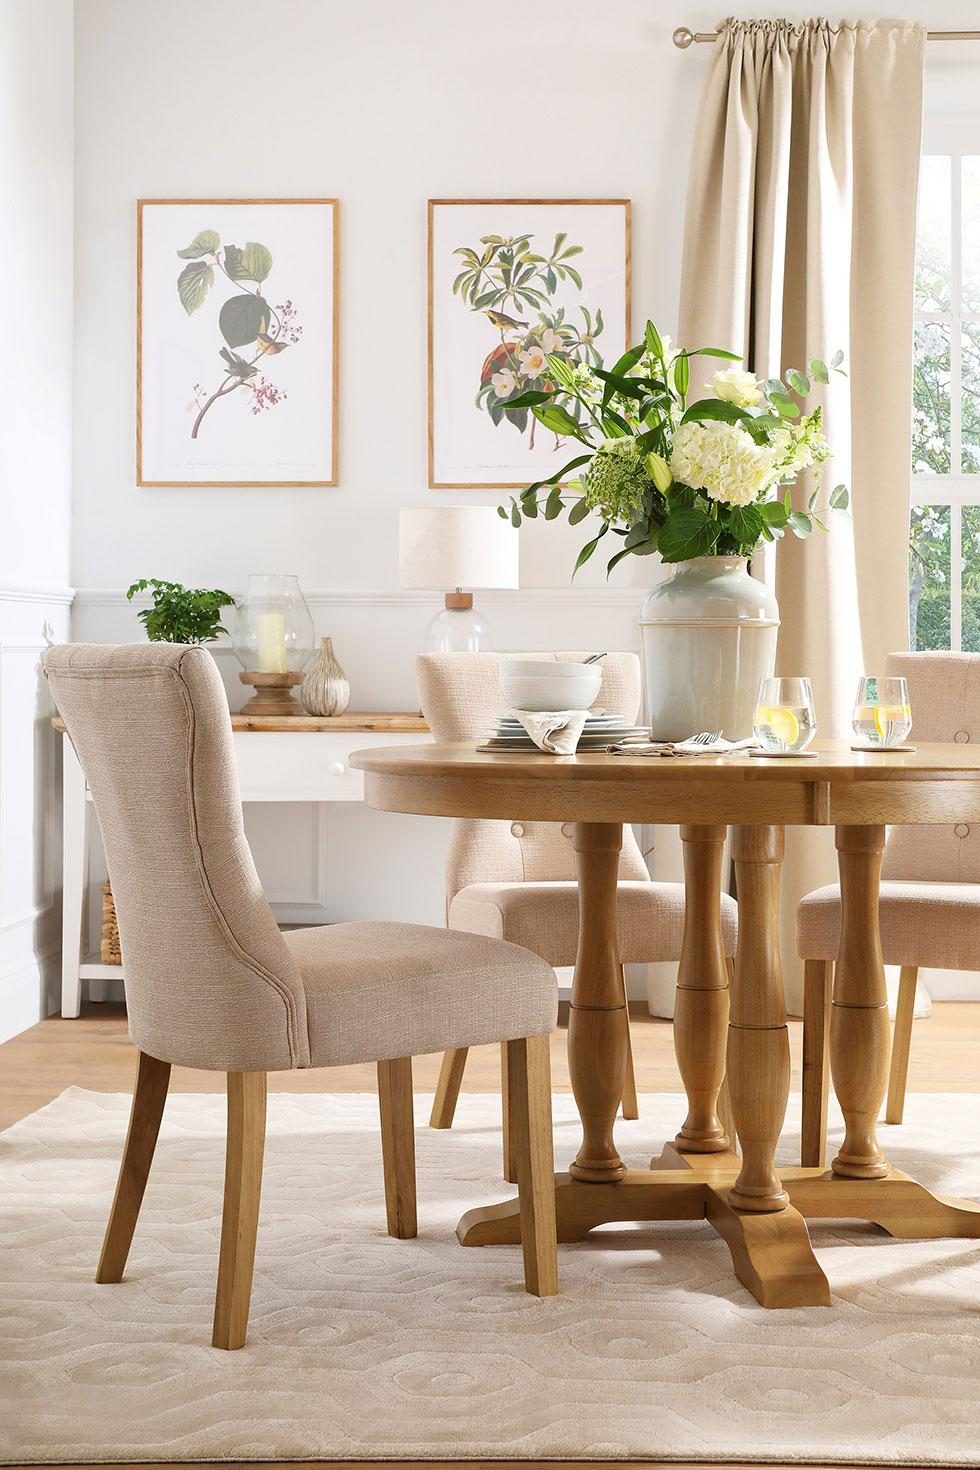 Neutral dining room with round wooden dining table and light fabric chairs